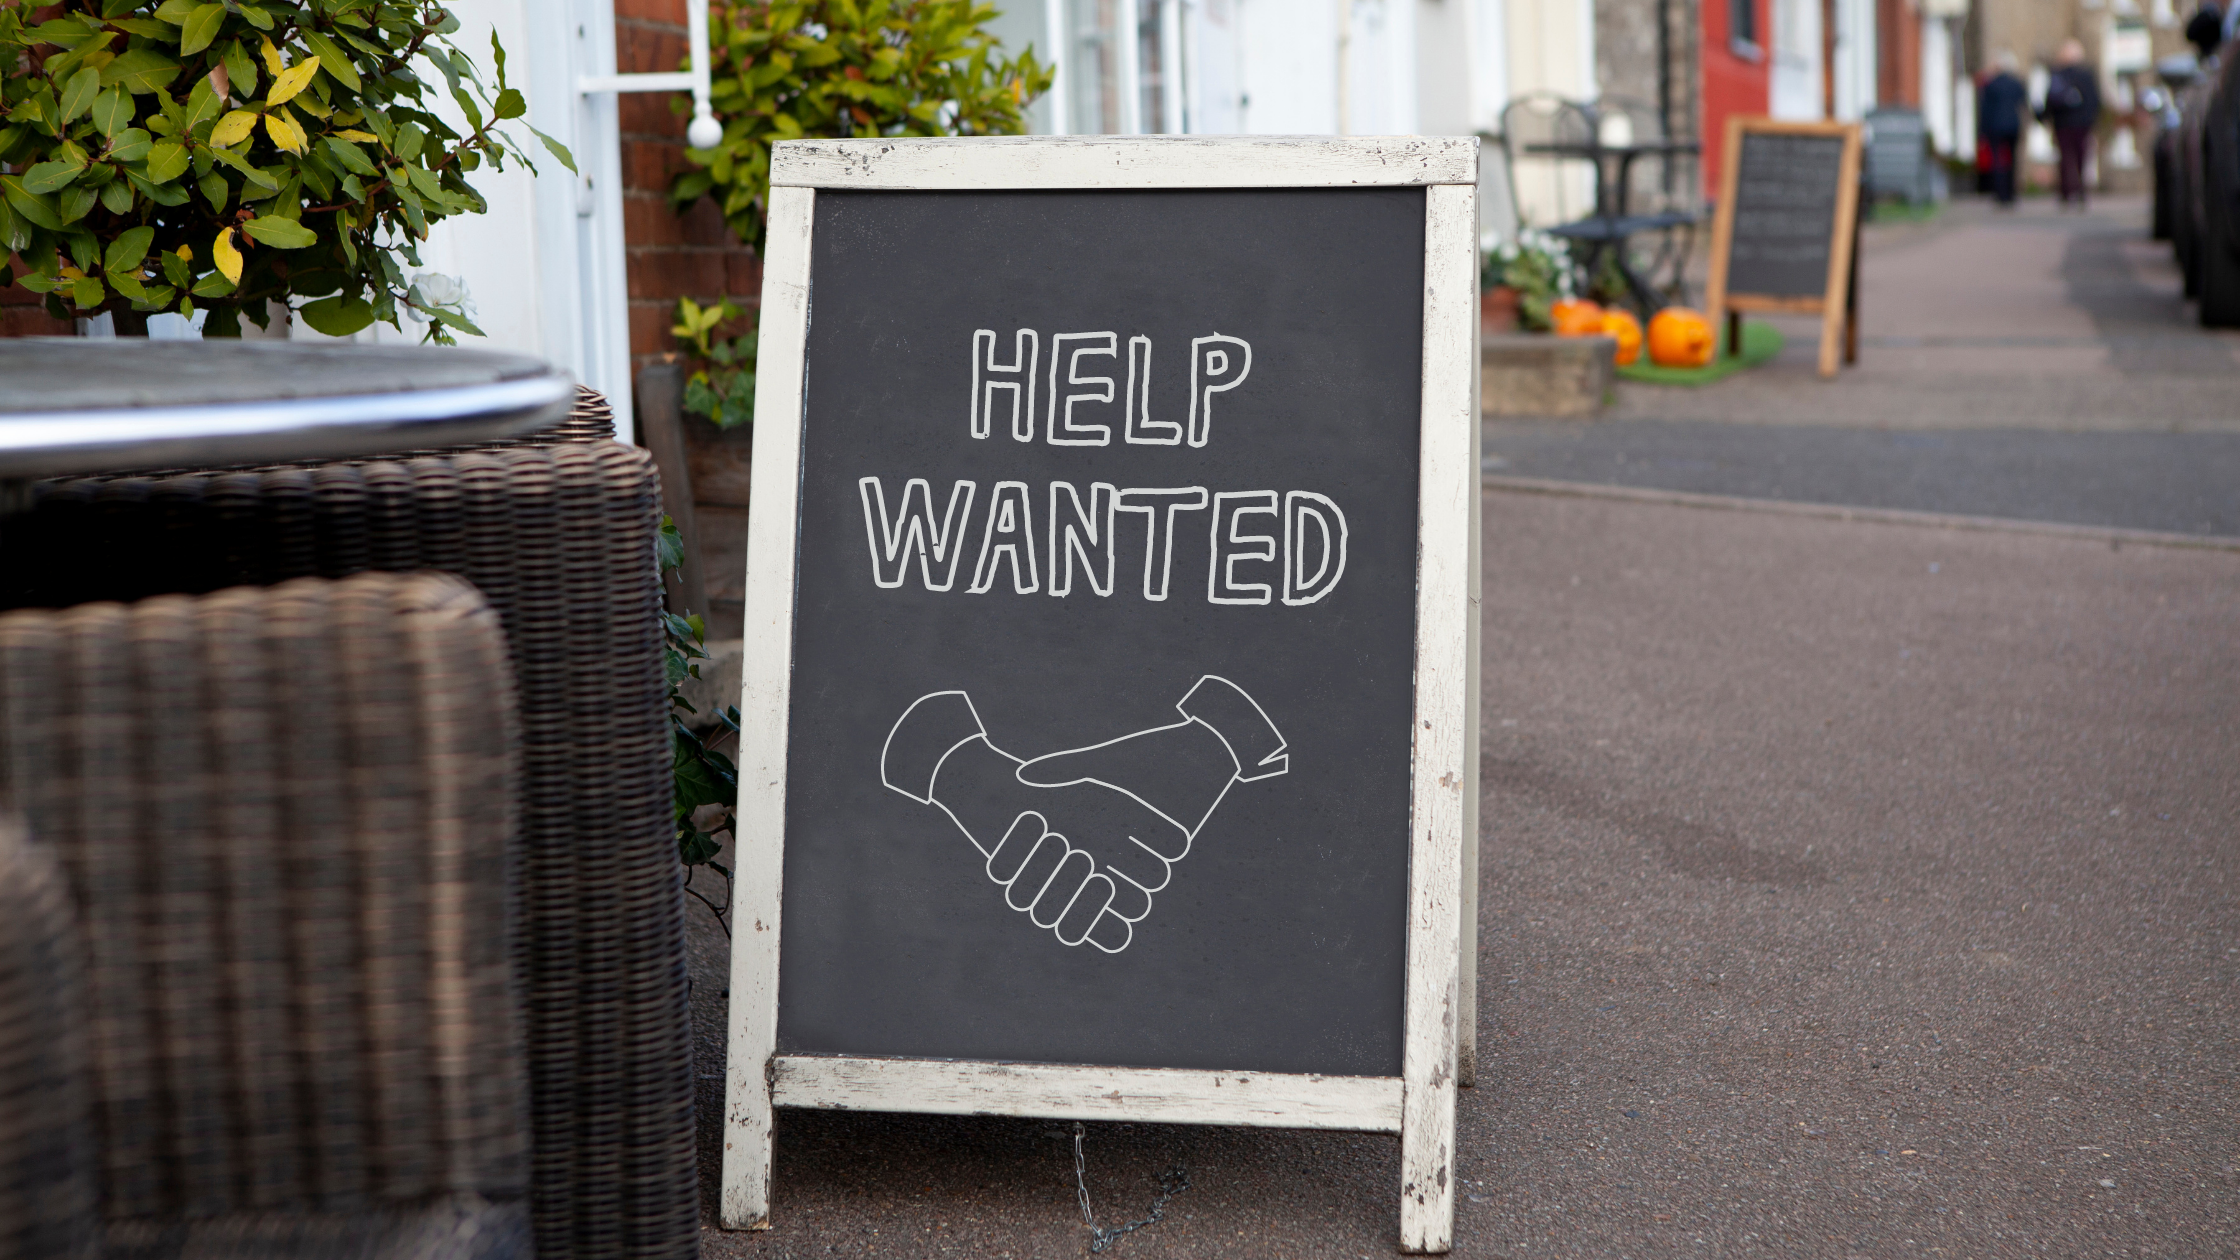 How to Recruit, Hire, and Retain Talent During a Labor Shortage